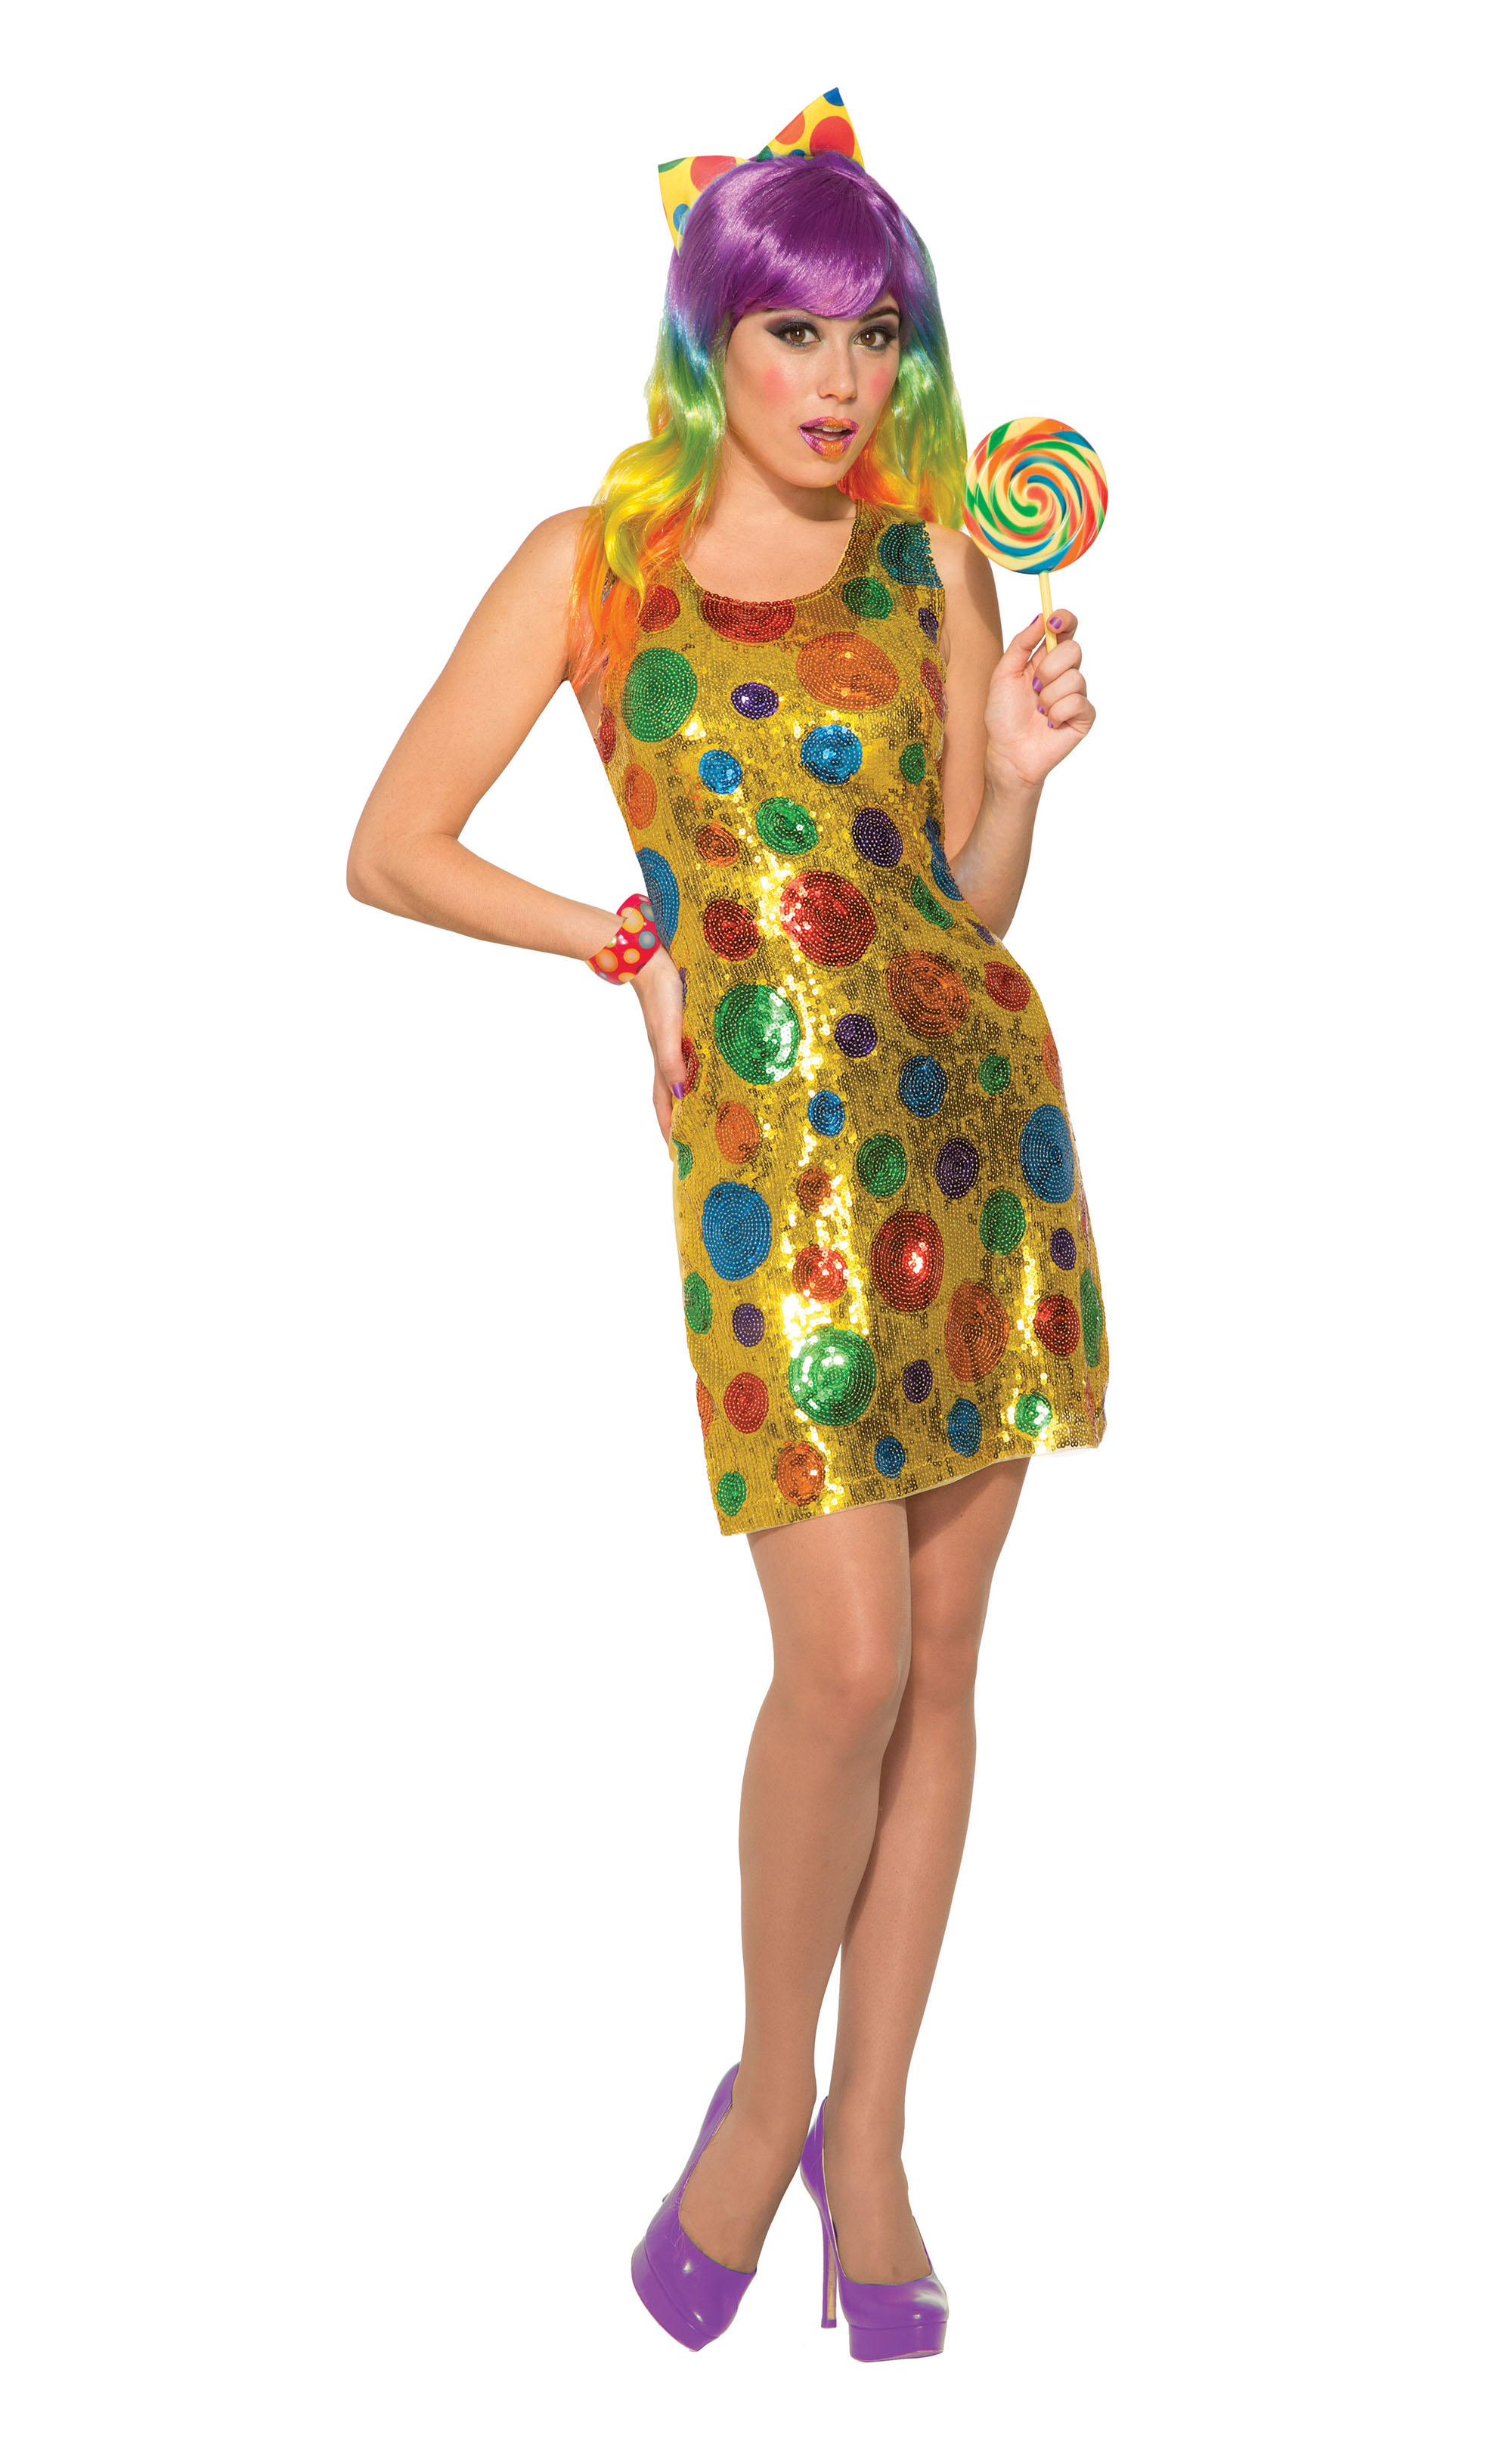 Clown Polka Dot Sequin Dress XS/S Fancy Dress Costume Outfit Womens Adult UK 6-8